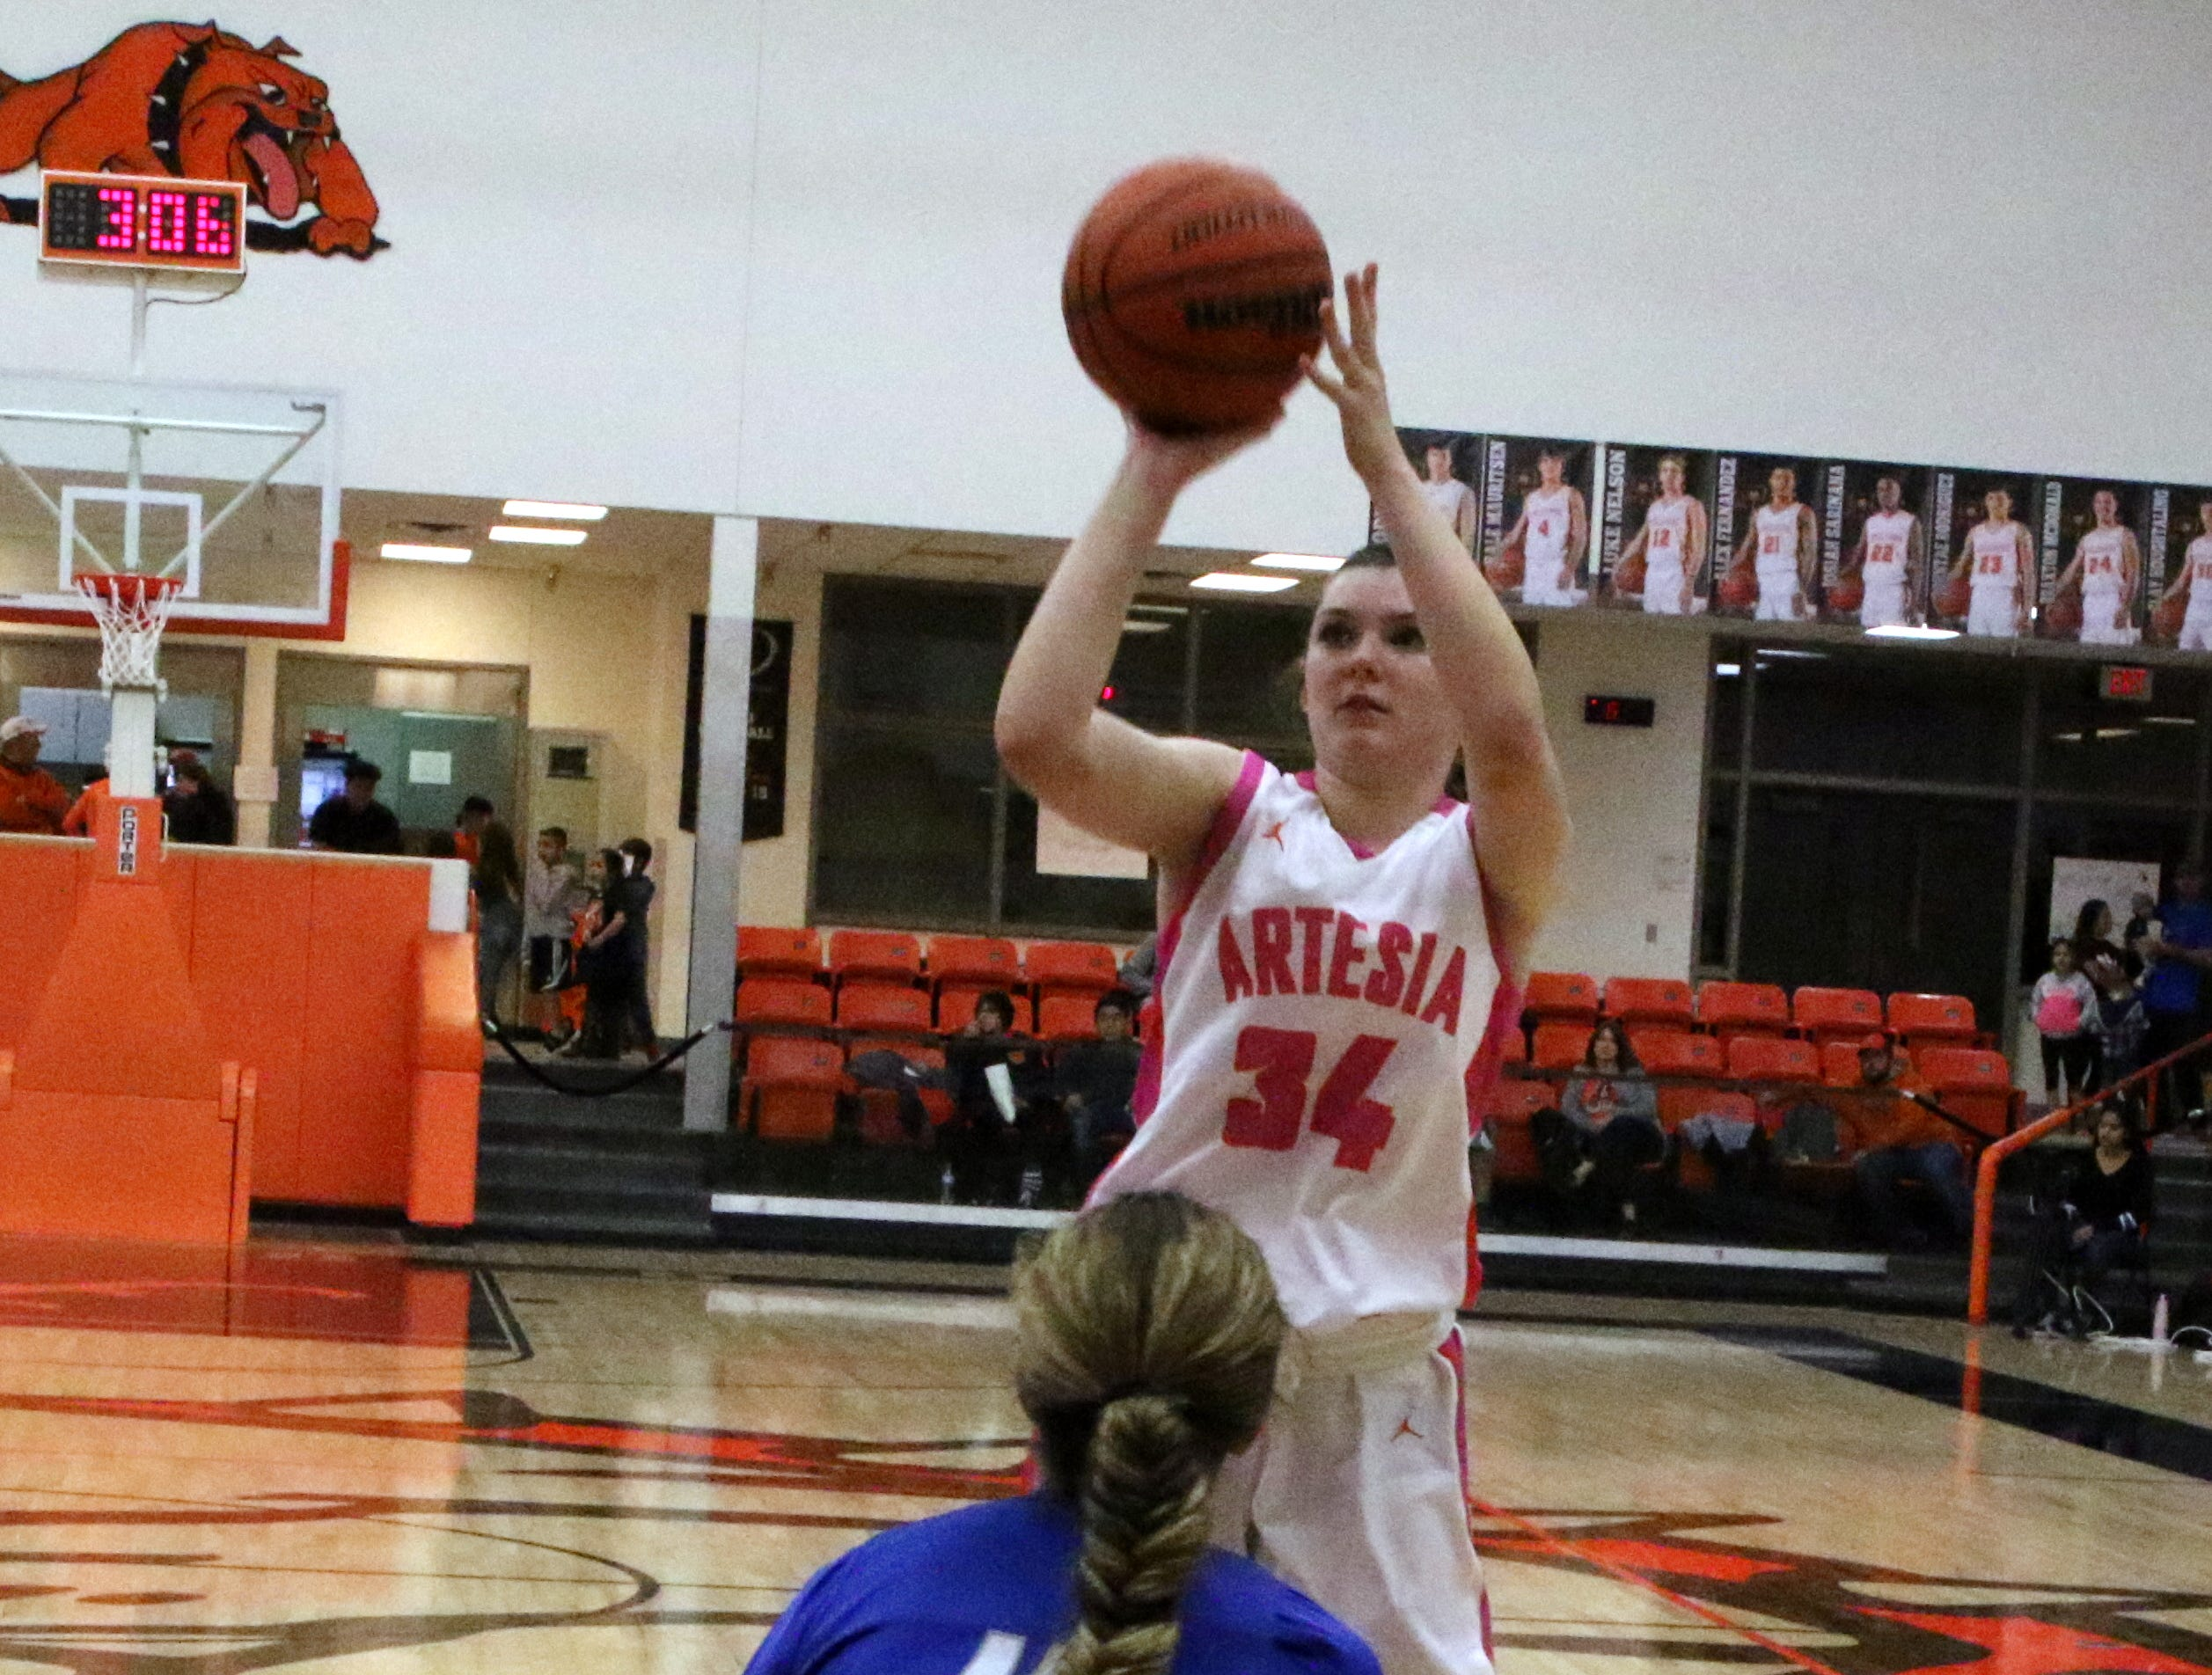 Artesia's Paityn Houghtaling takes a jump shot during Friday's game against Carlsbad. Houghtaling finished with nine points.